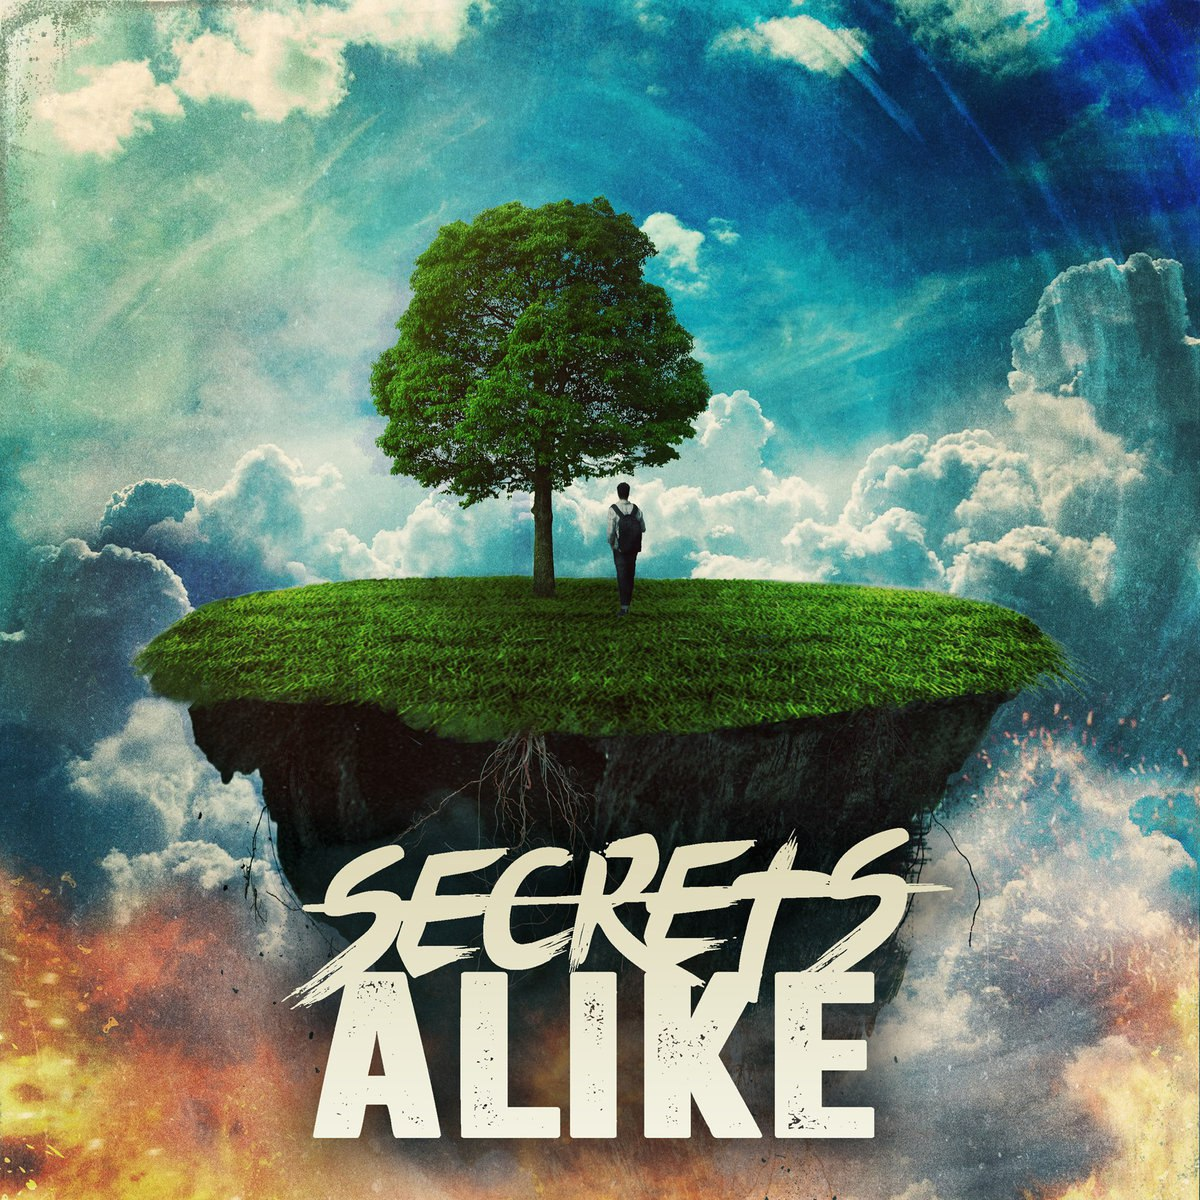 Secrets Alike - Transcendence [single] (2015)